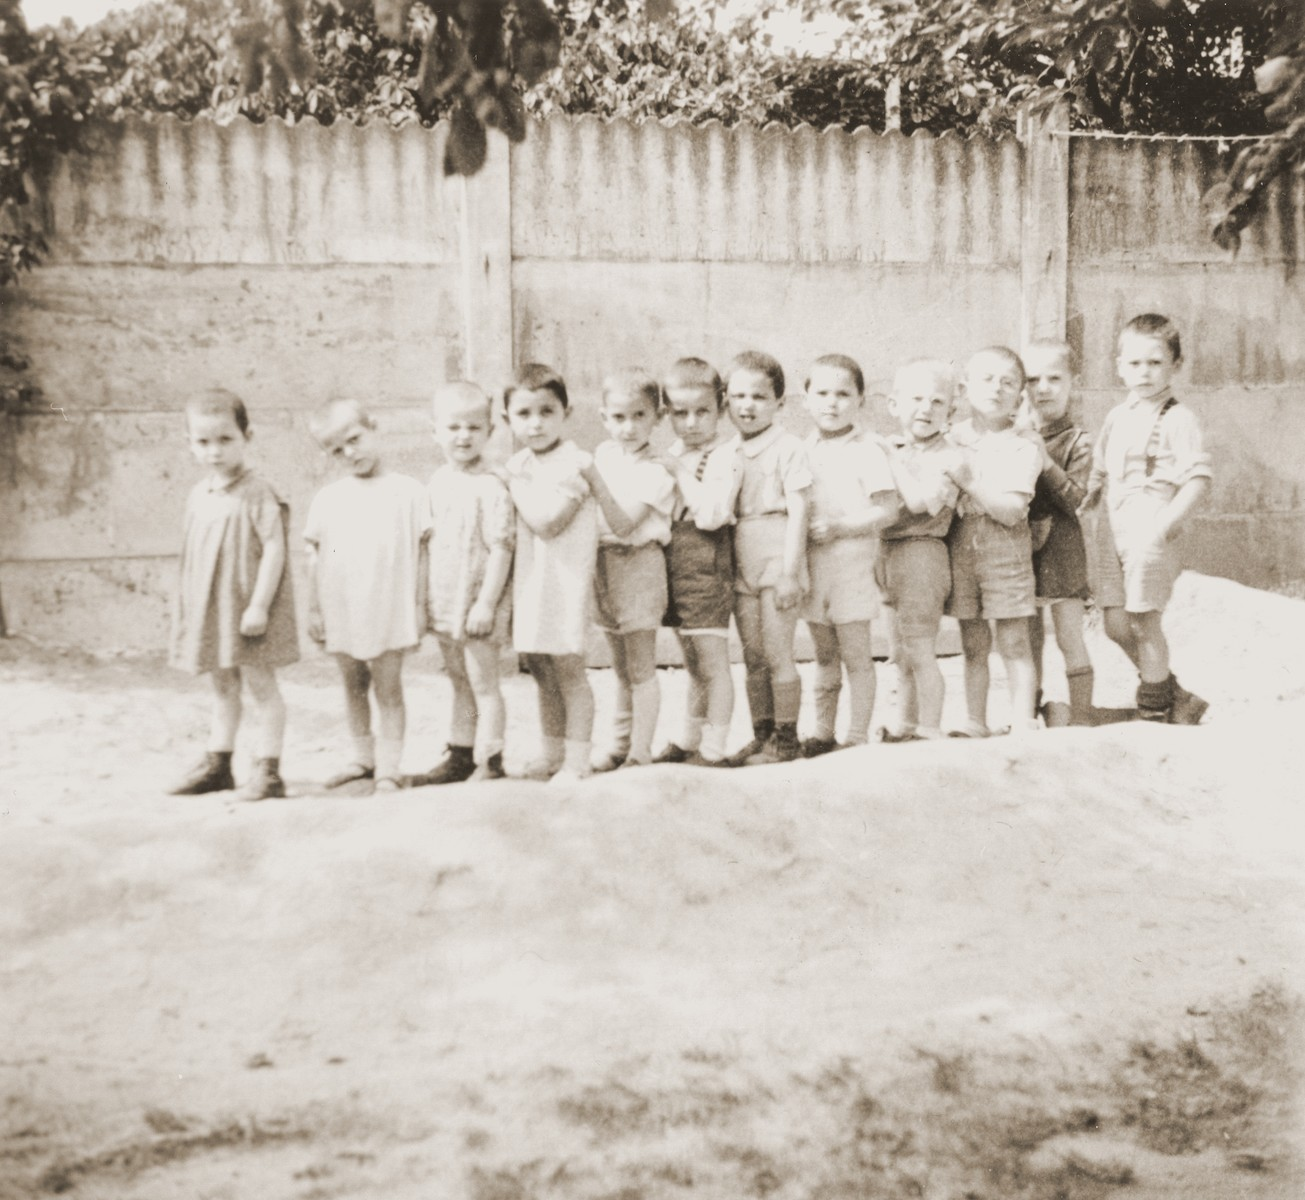 A group of toddlers form a line in the yard of the La Pouponniere children's home in Belgium.